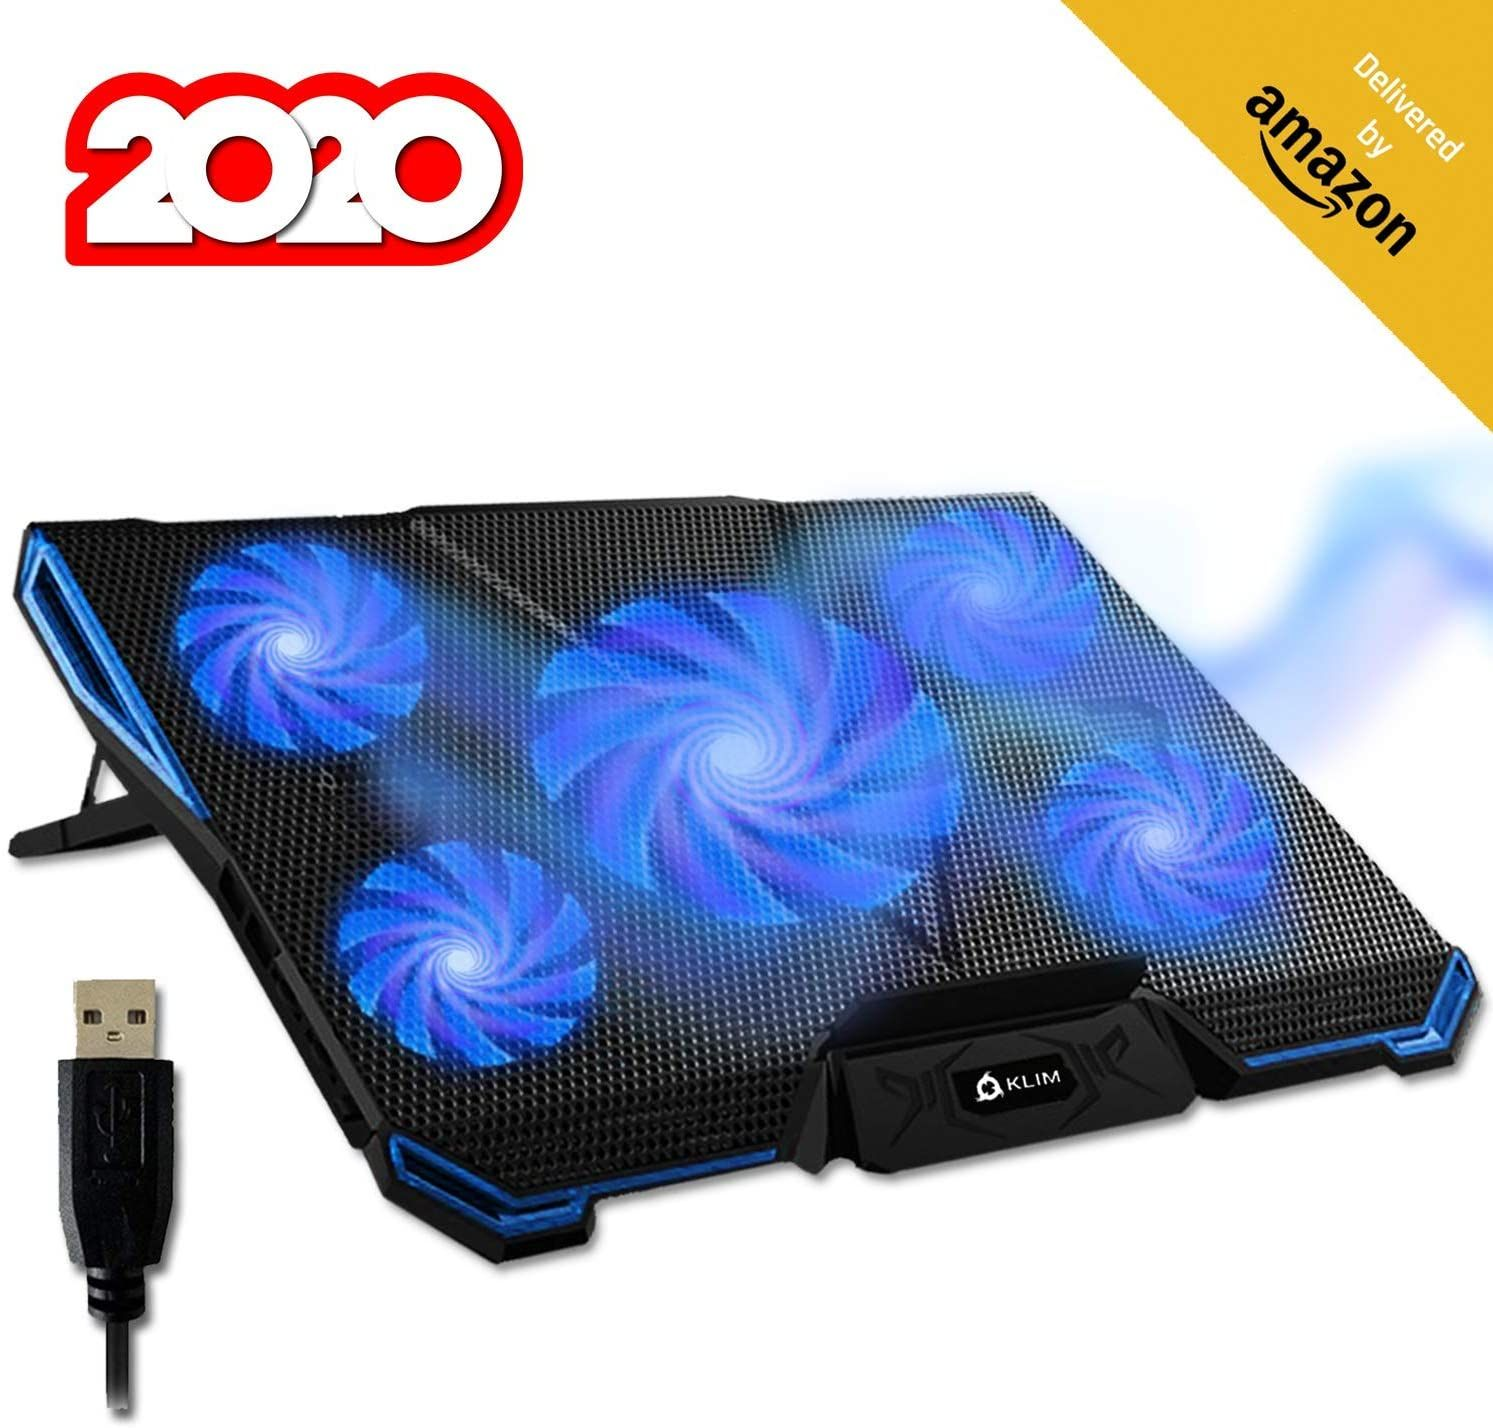 Amazon Com Klim Cyclone Laptop Cooling Pad 5 Fans Cooler No More Overheating Increase Your Pc Performanc In 2020 Laptop Cooling Pad Laptop Cooler Gaming Stand